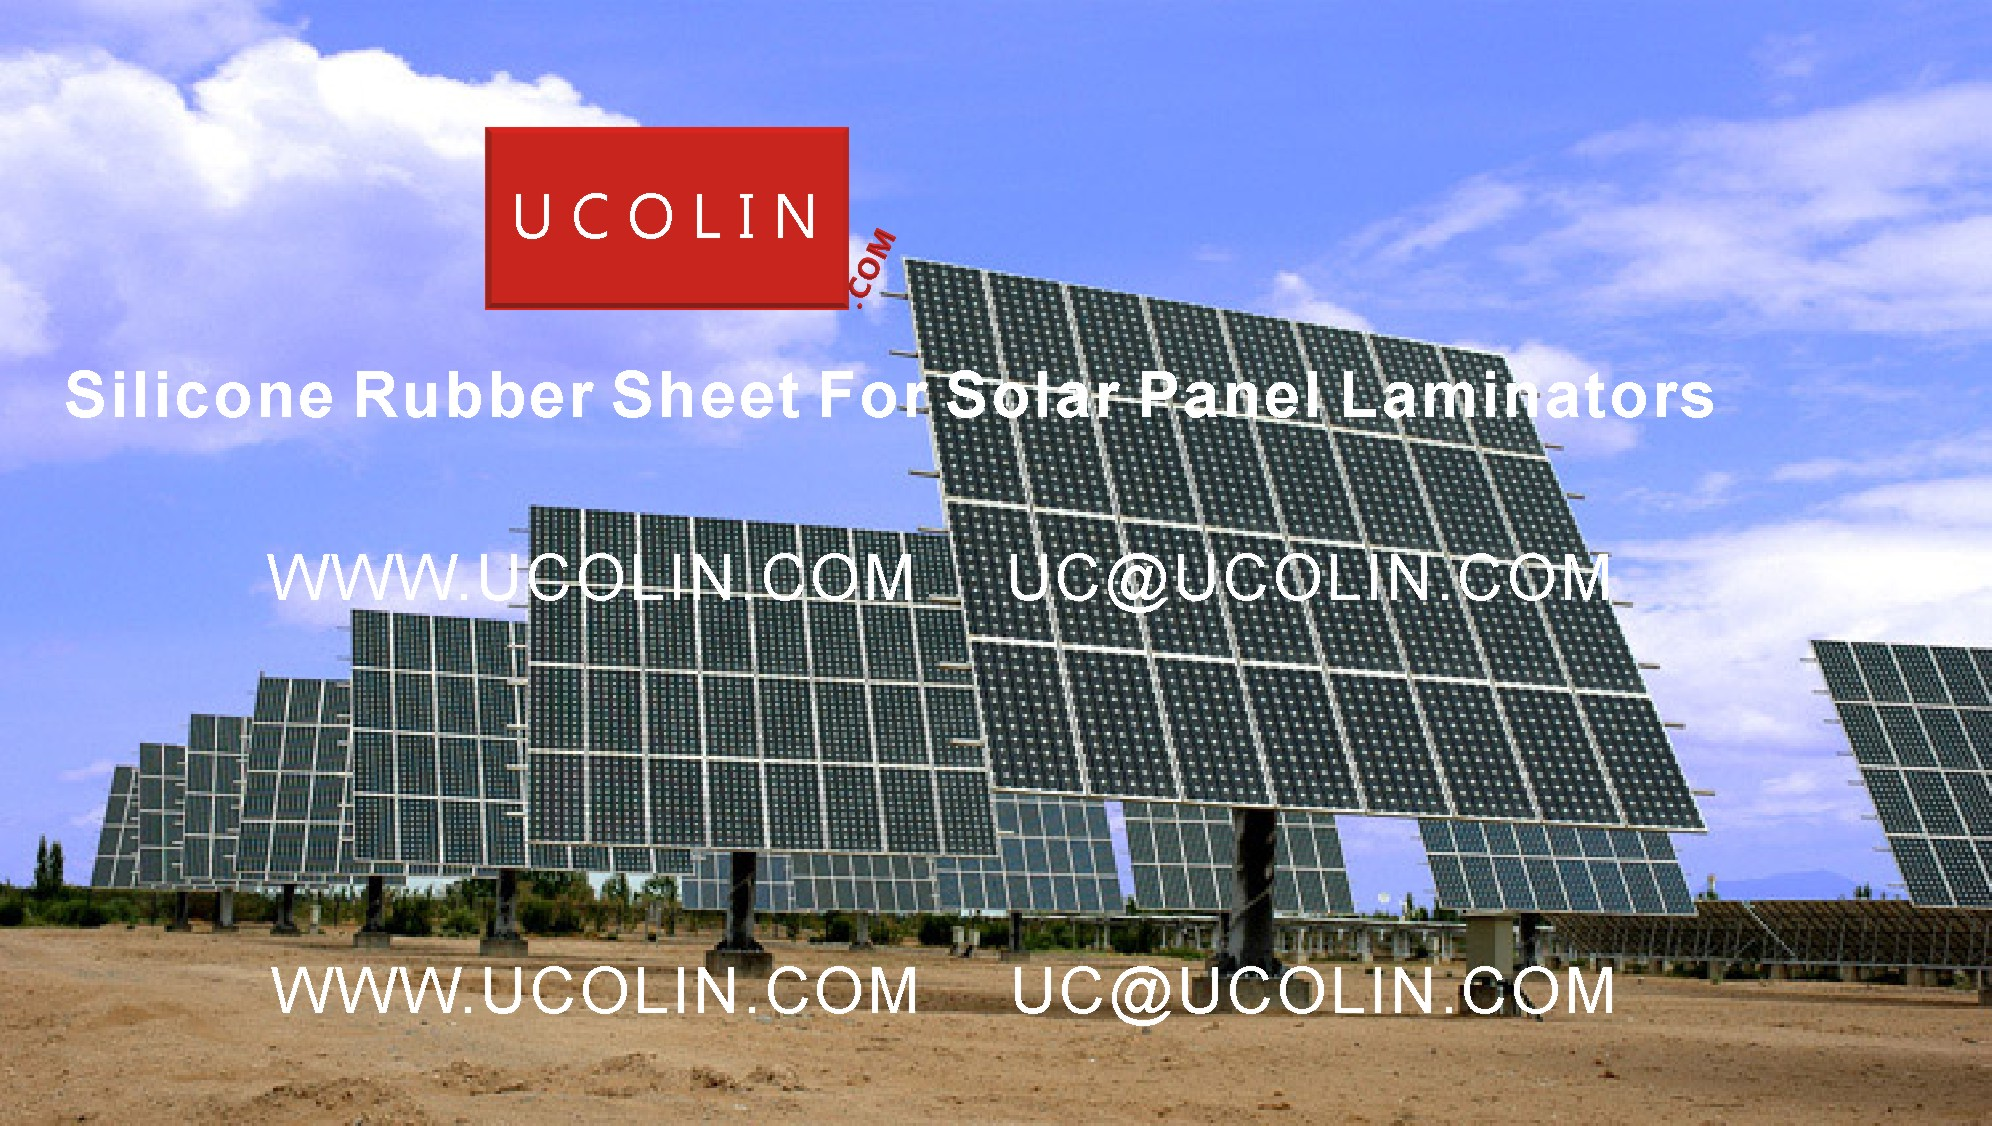 003 Silicon Rubber Sheet For Solar Panel Laminators